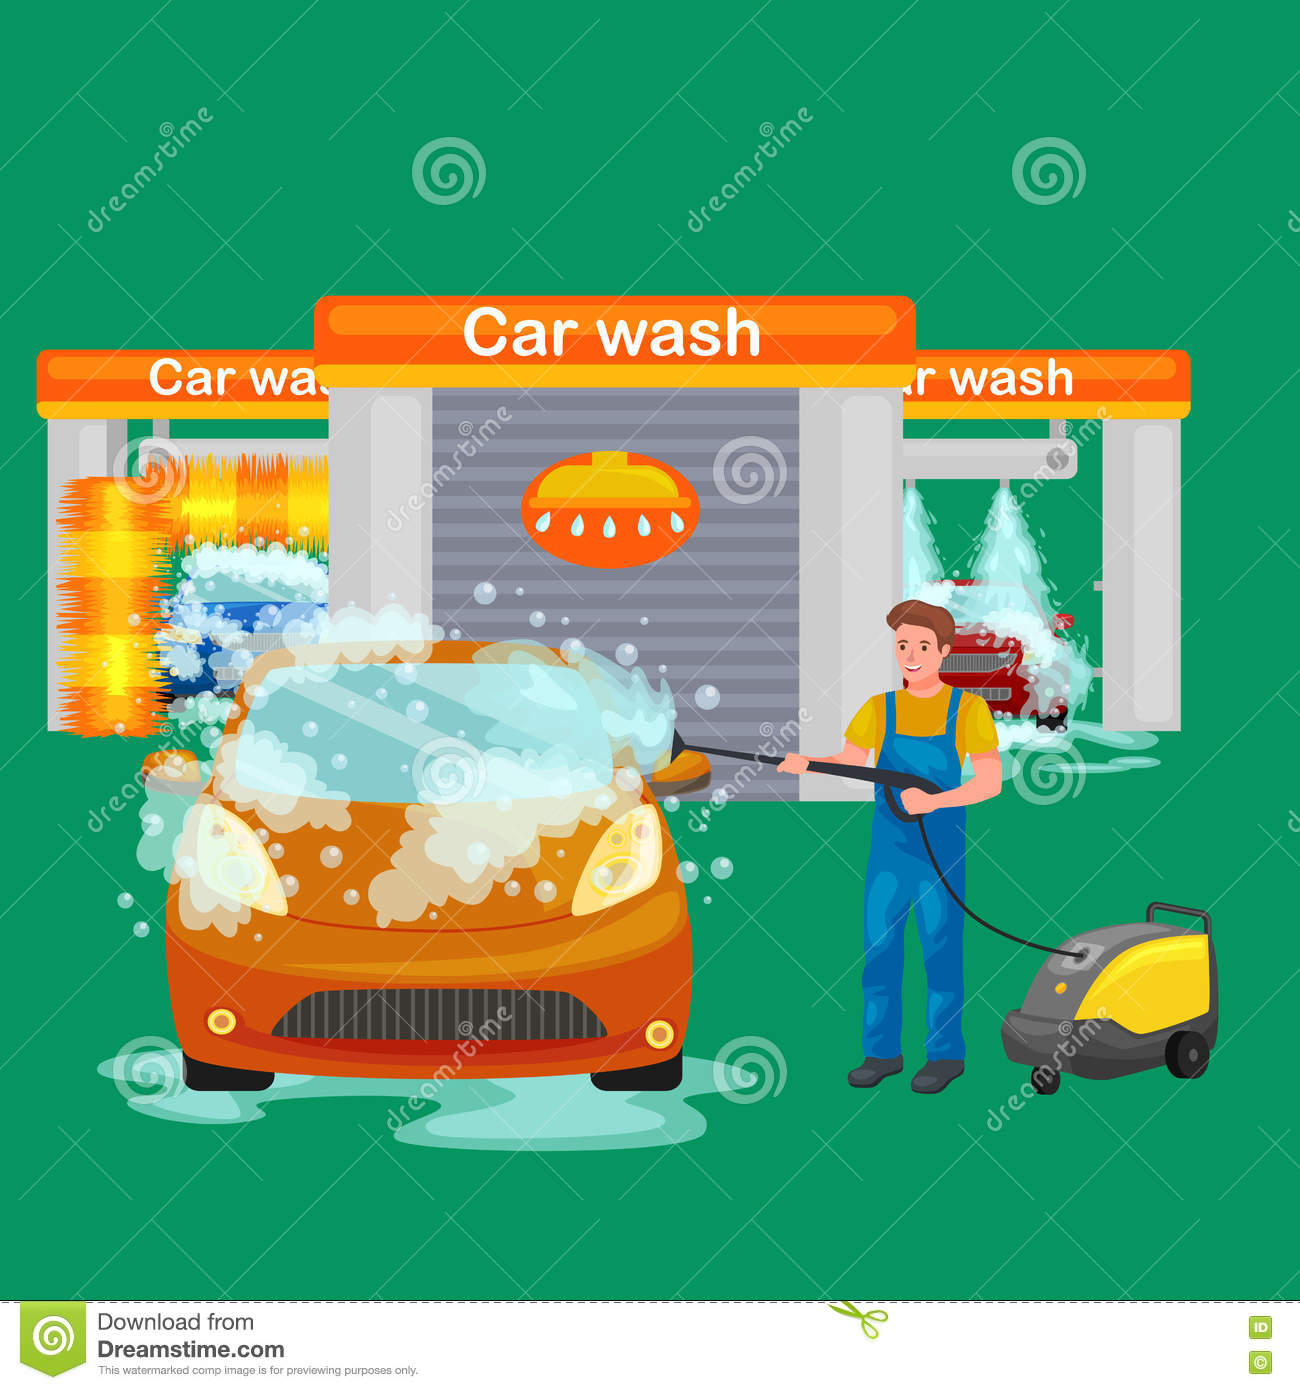 Transport Cleaning Services : Car service auto wash and transport cleaning cartoon